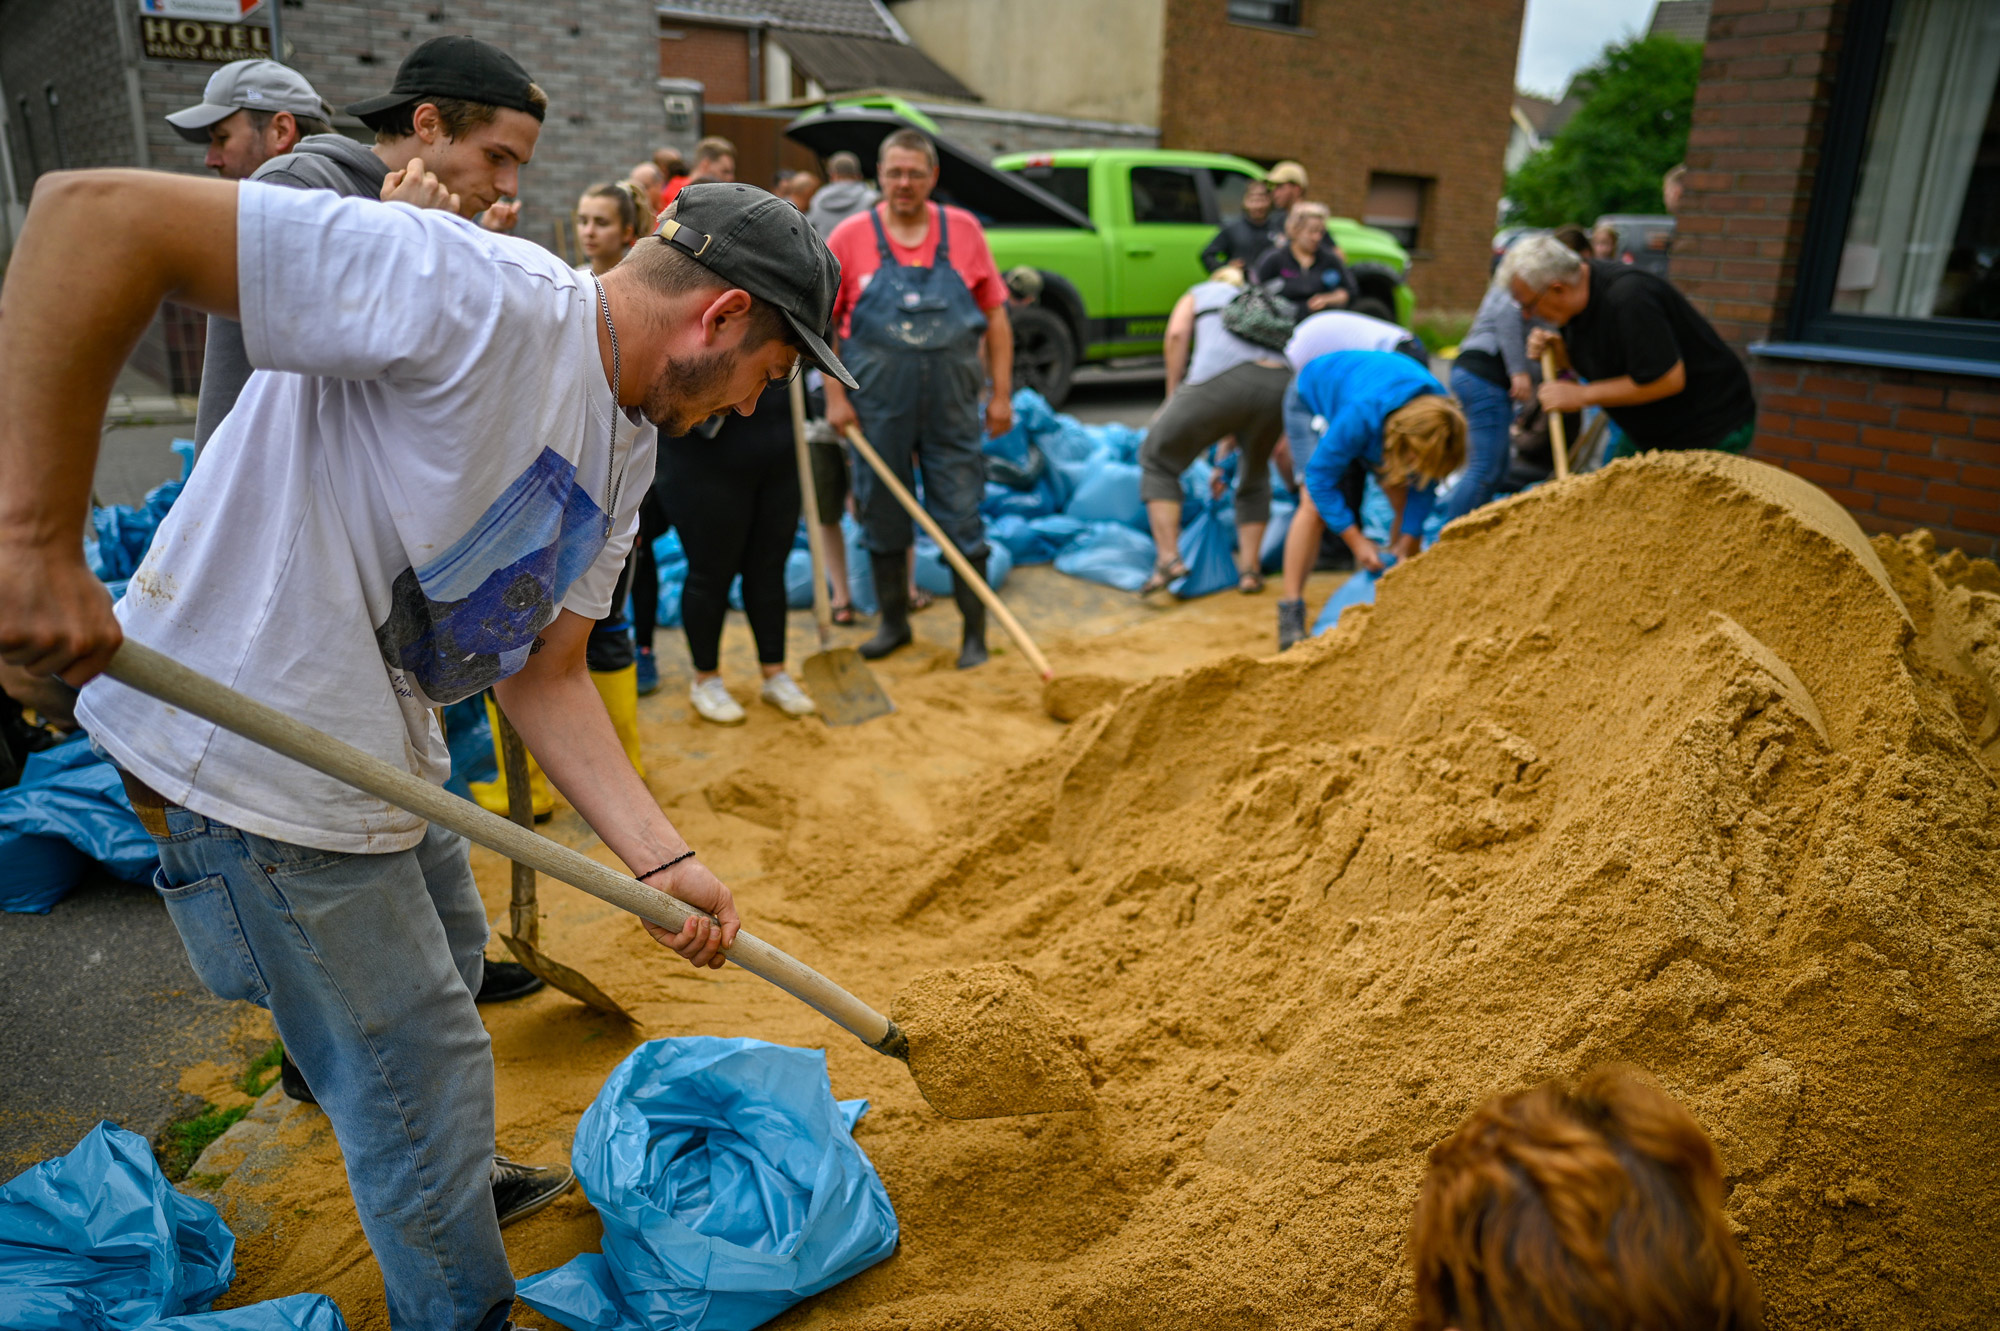 Residents fill bags with sand to protect against flooding on July 16 in Erftstadt, Germany.